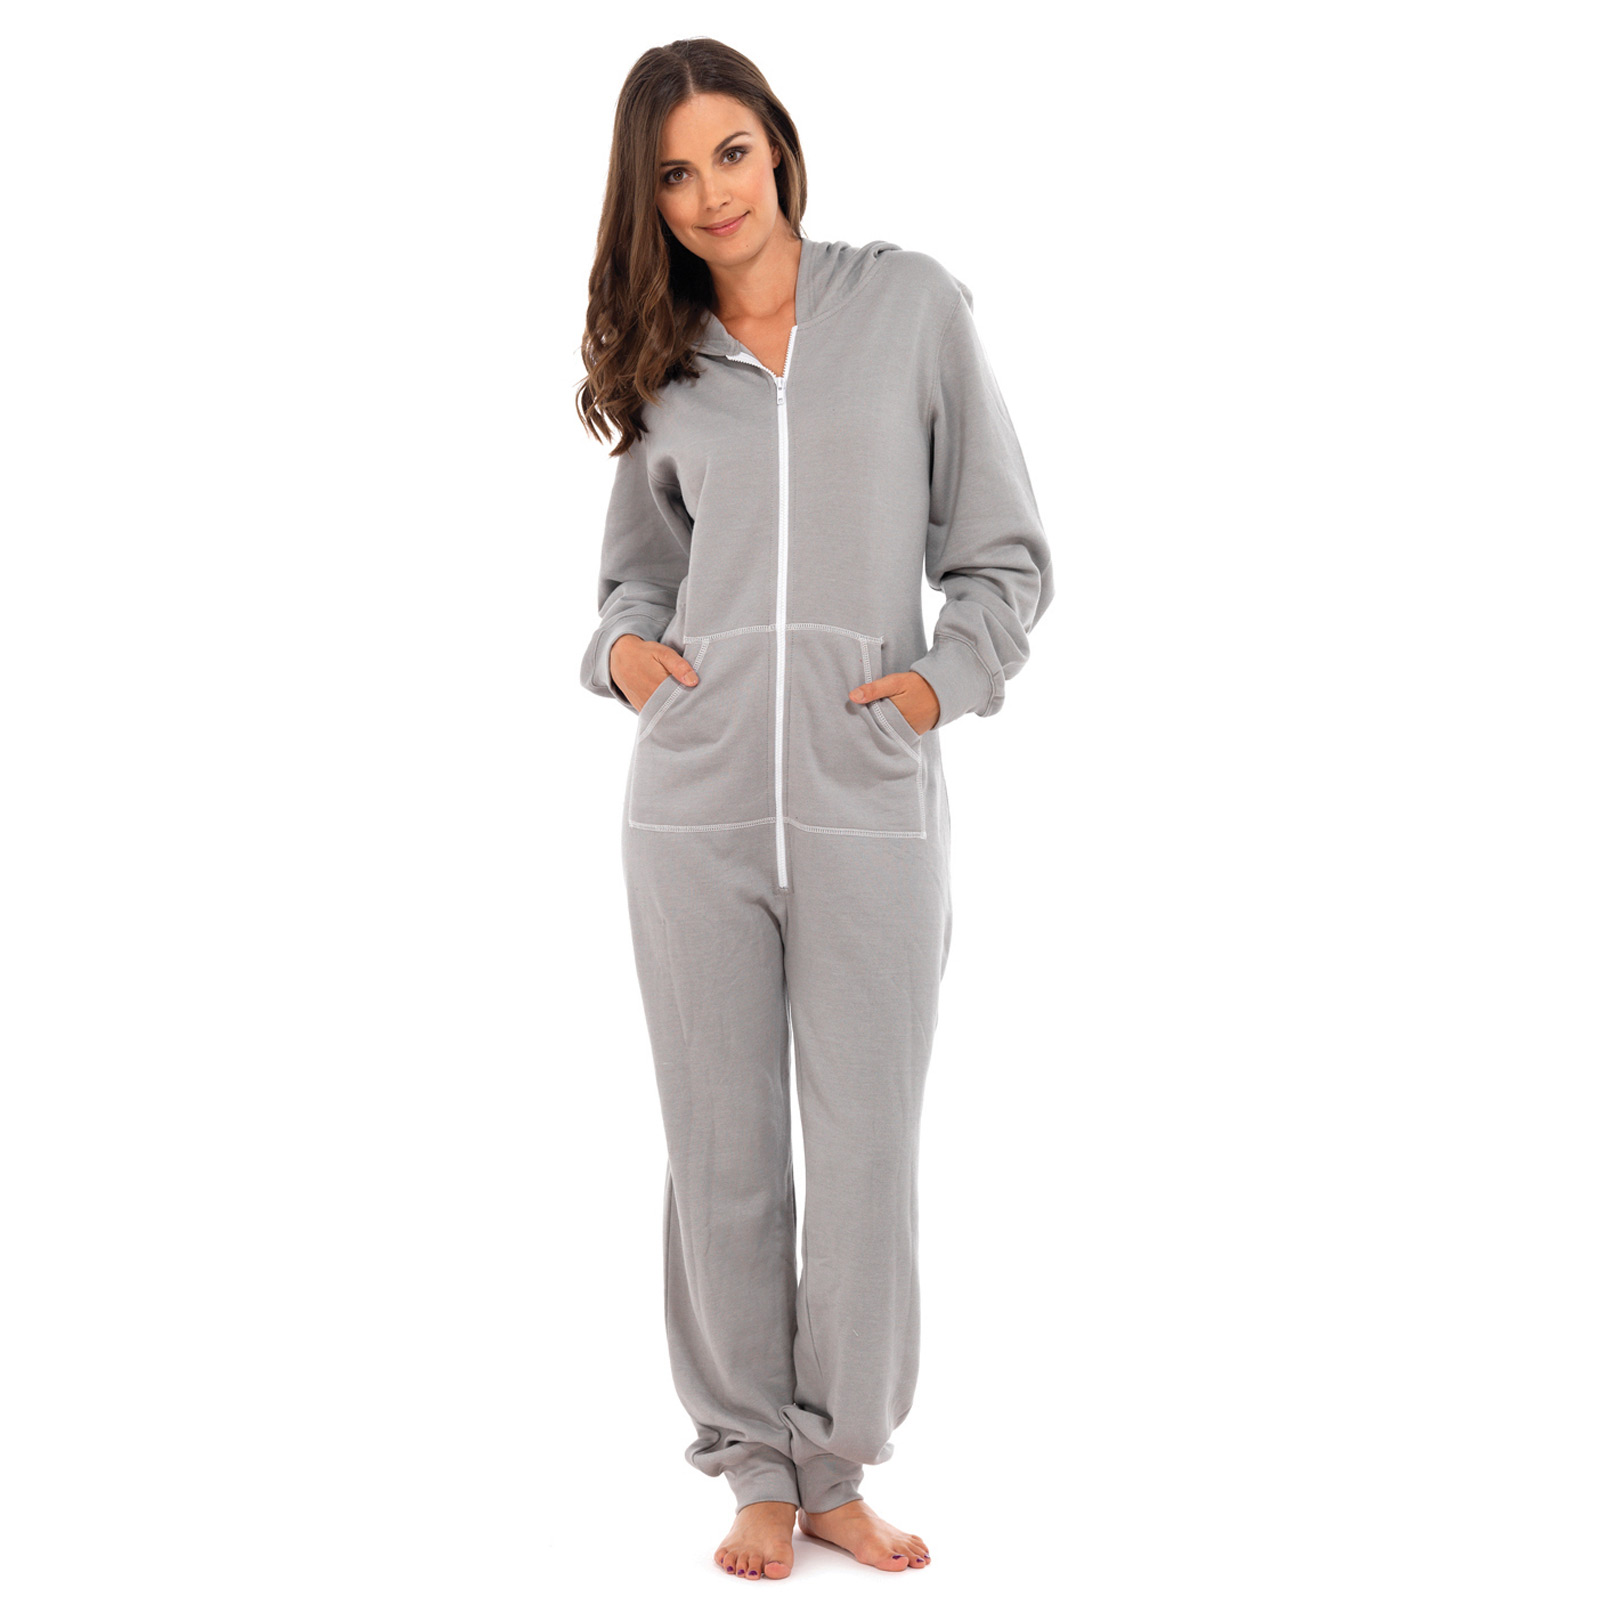 ladies all in one piece pyjama suit with hood sleep jump onesie pjs nightwear. Black Bedroom Furniture Sets. Home Design Ideas